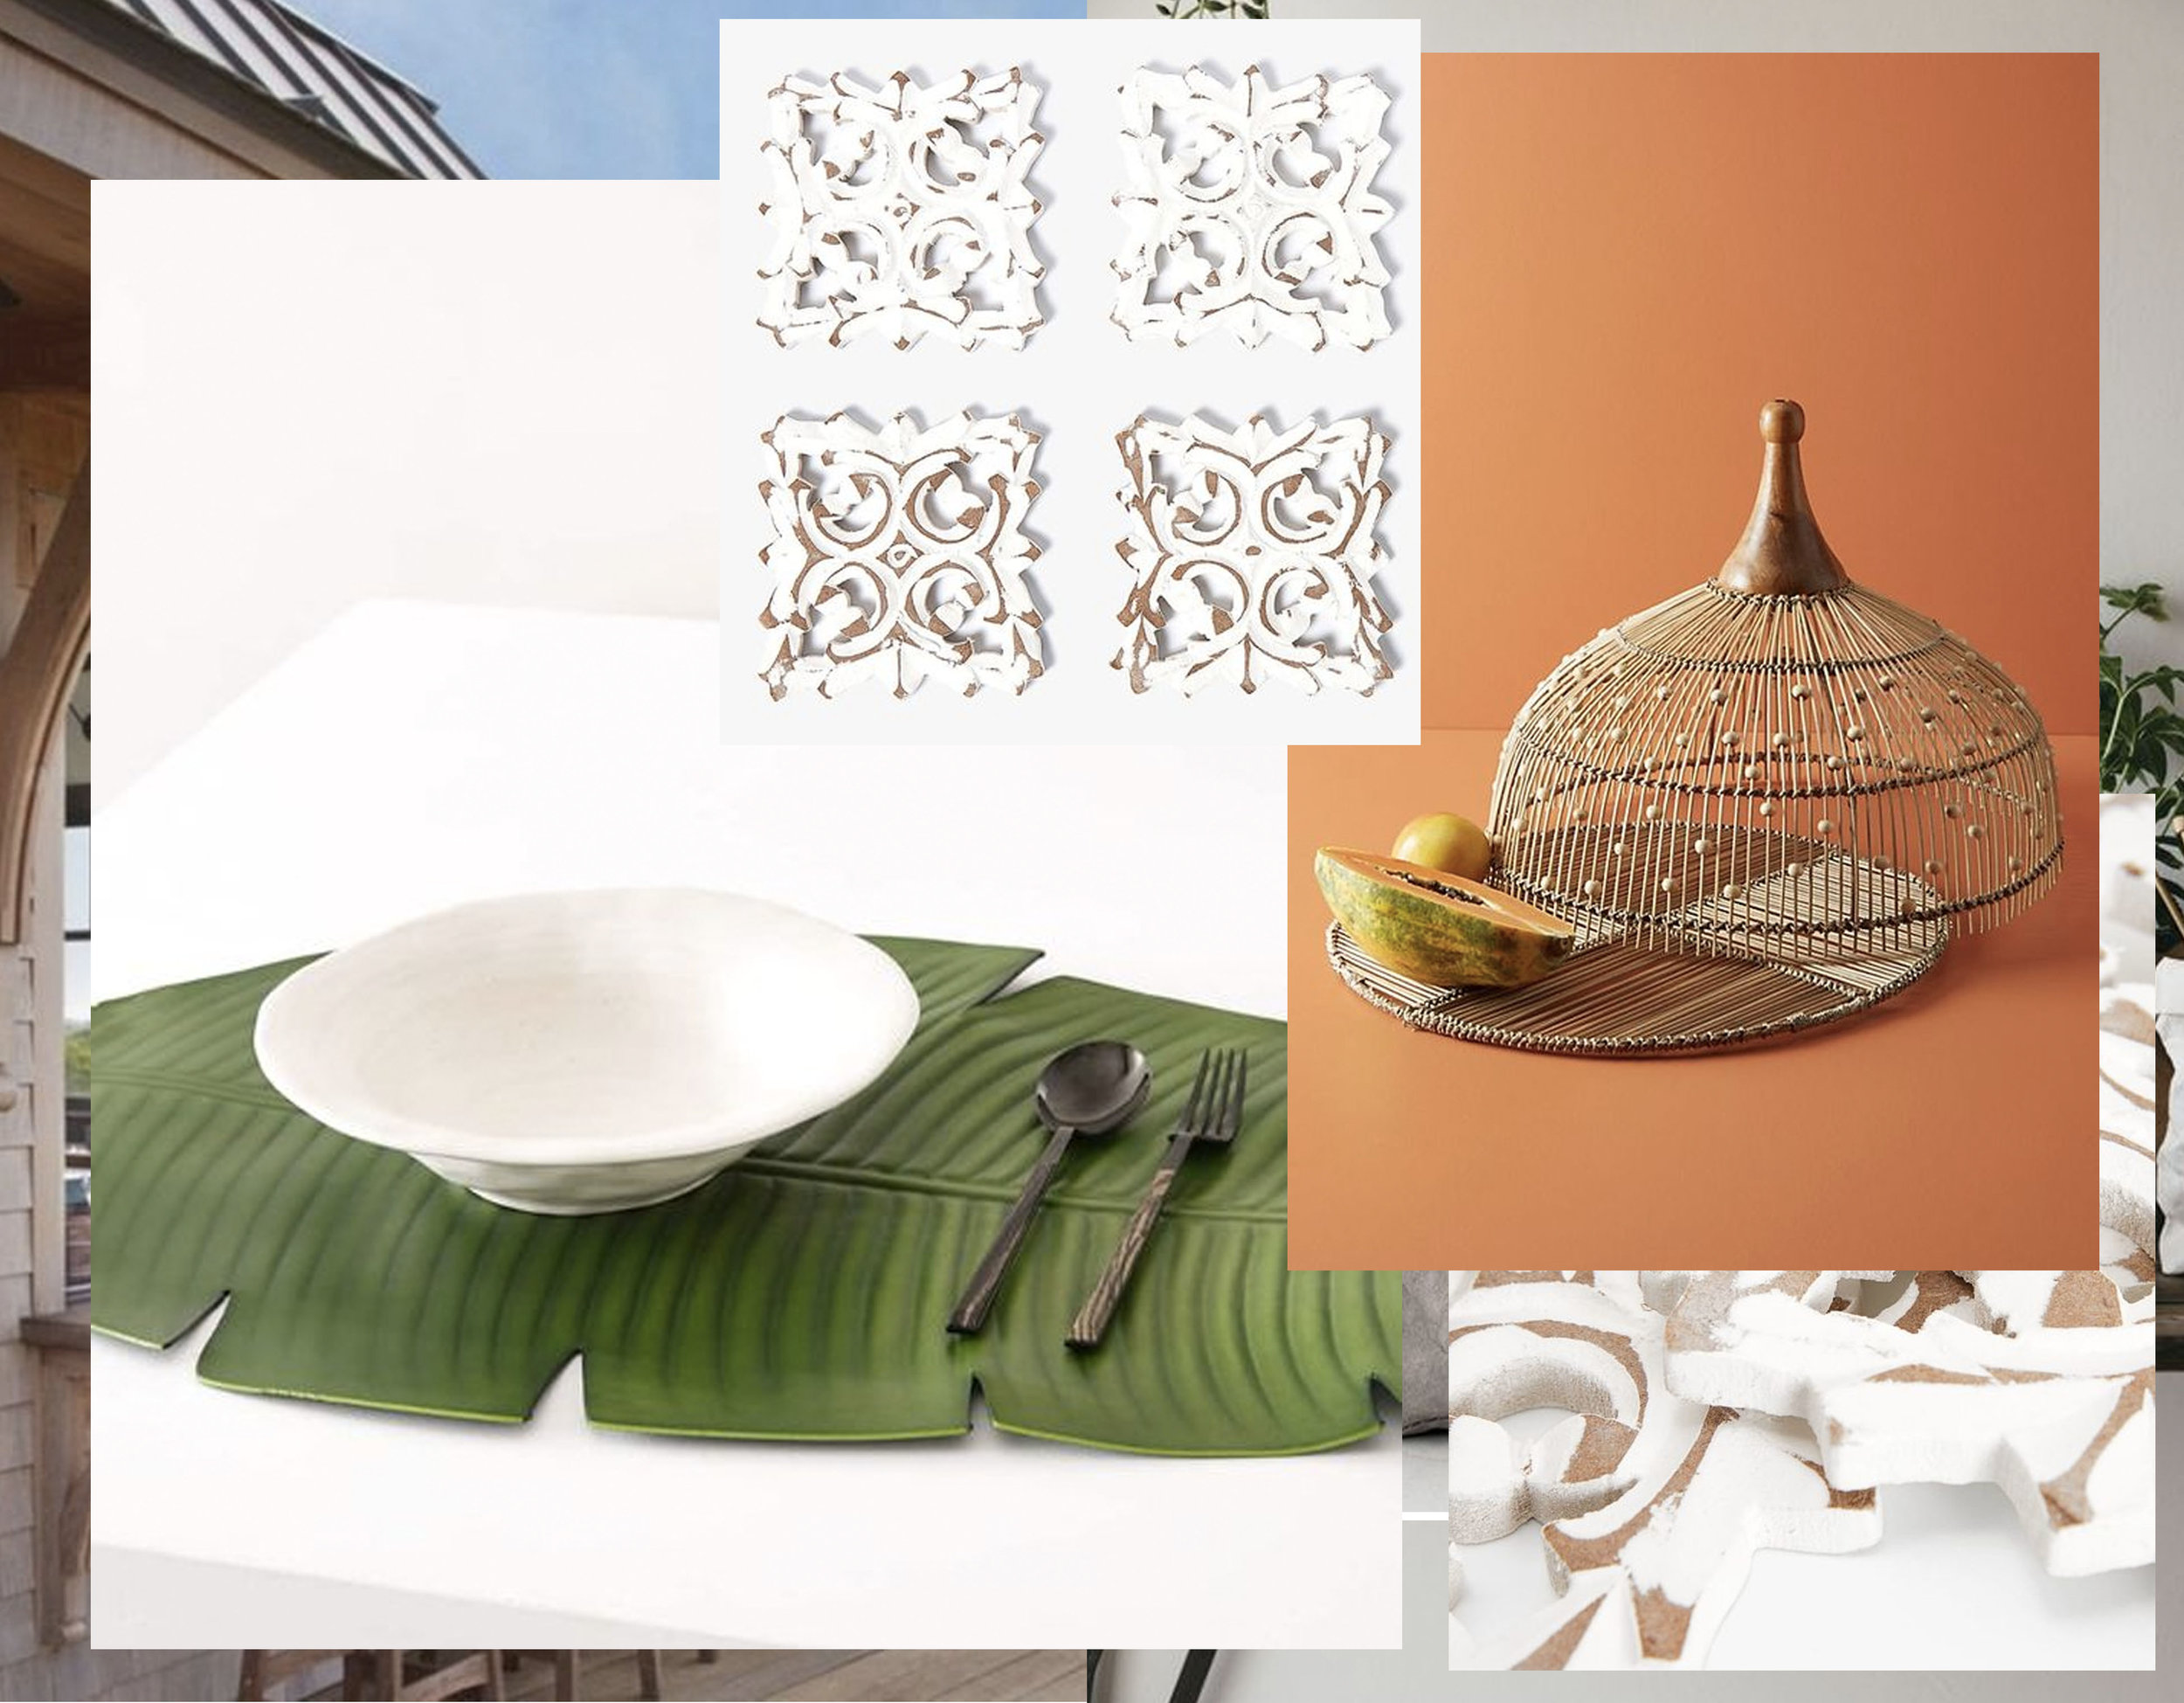 Leaf shaped table runner  Zara Home  - openwork wooden coaster  Zara Home  - Annika food dome  Anthropologie